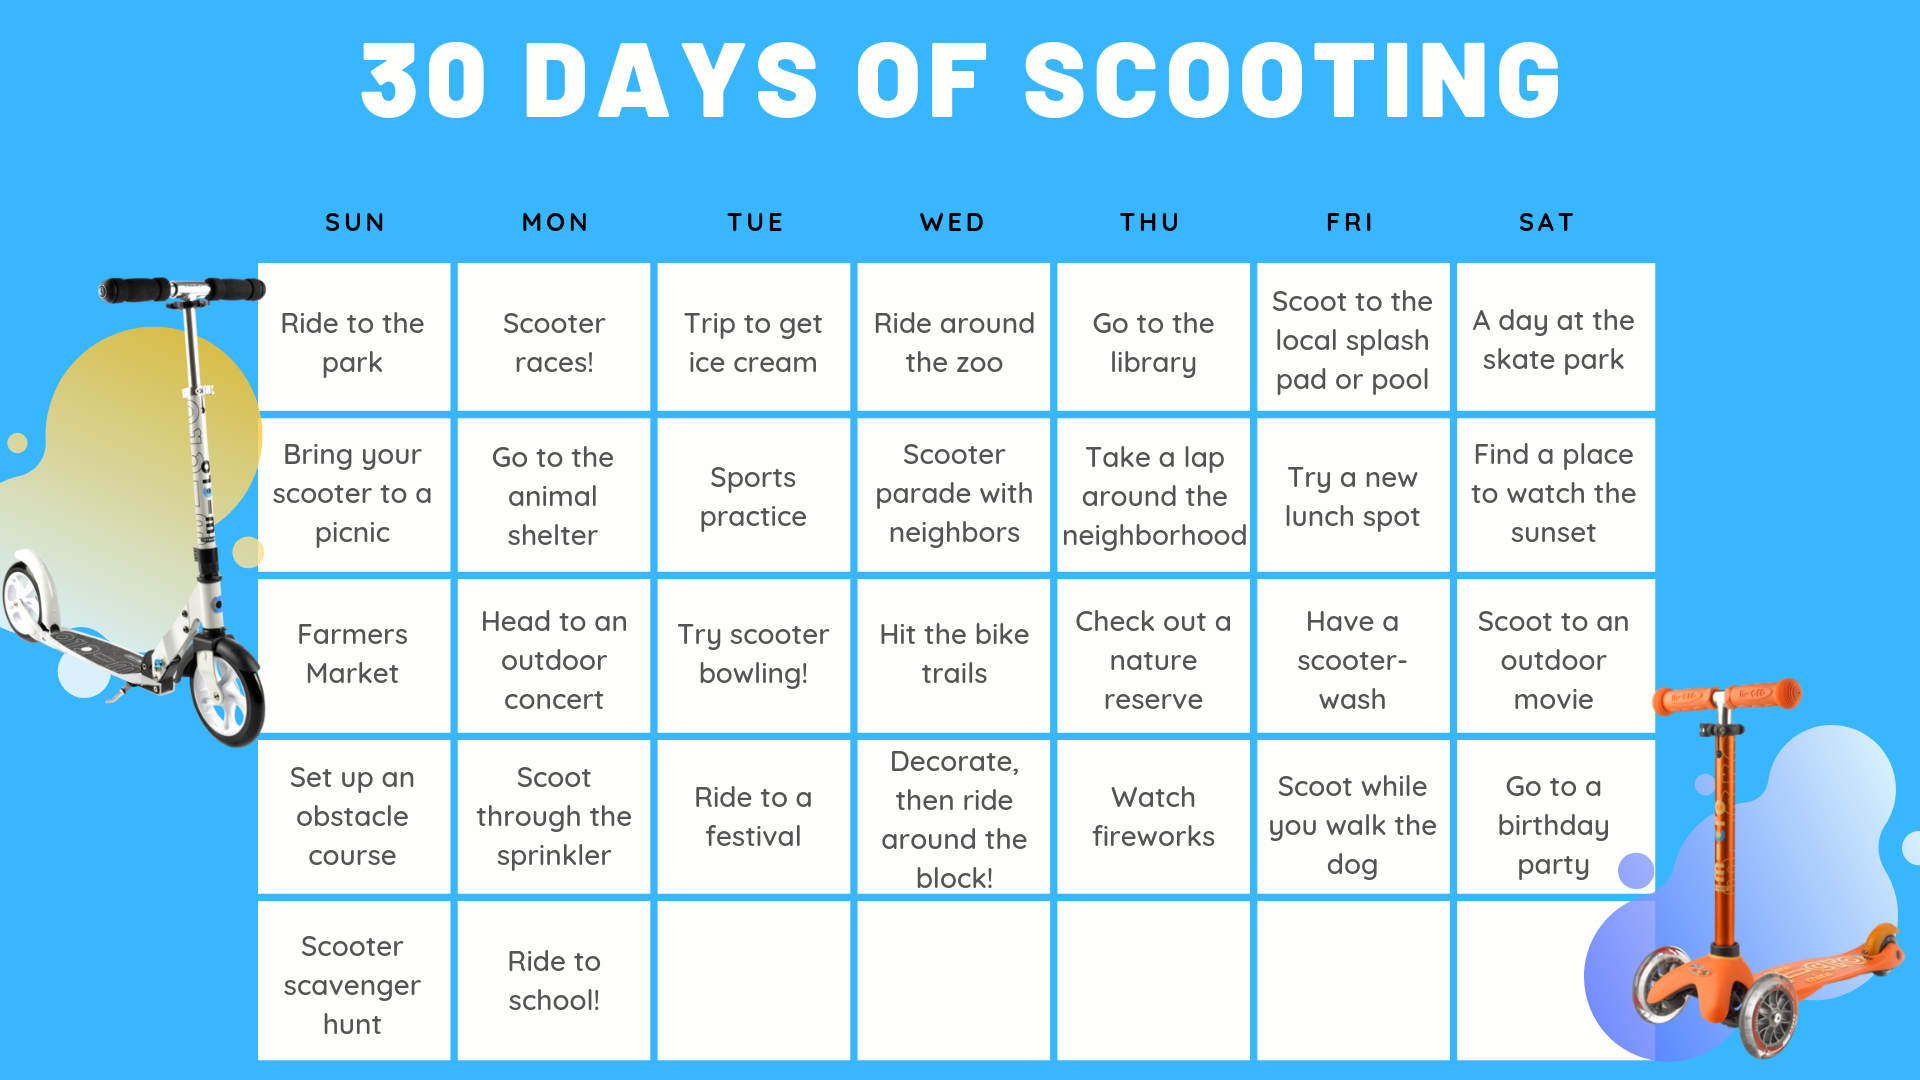 30 Days of Scooting